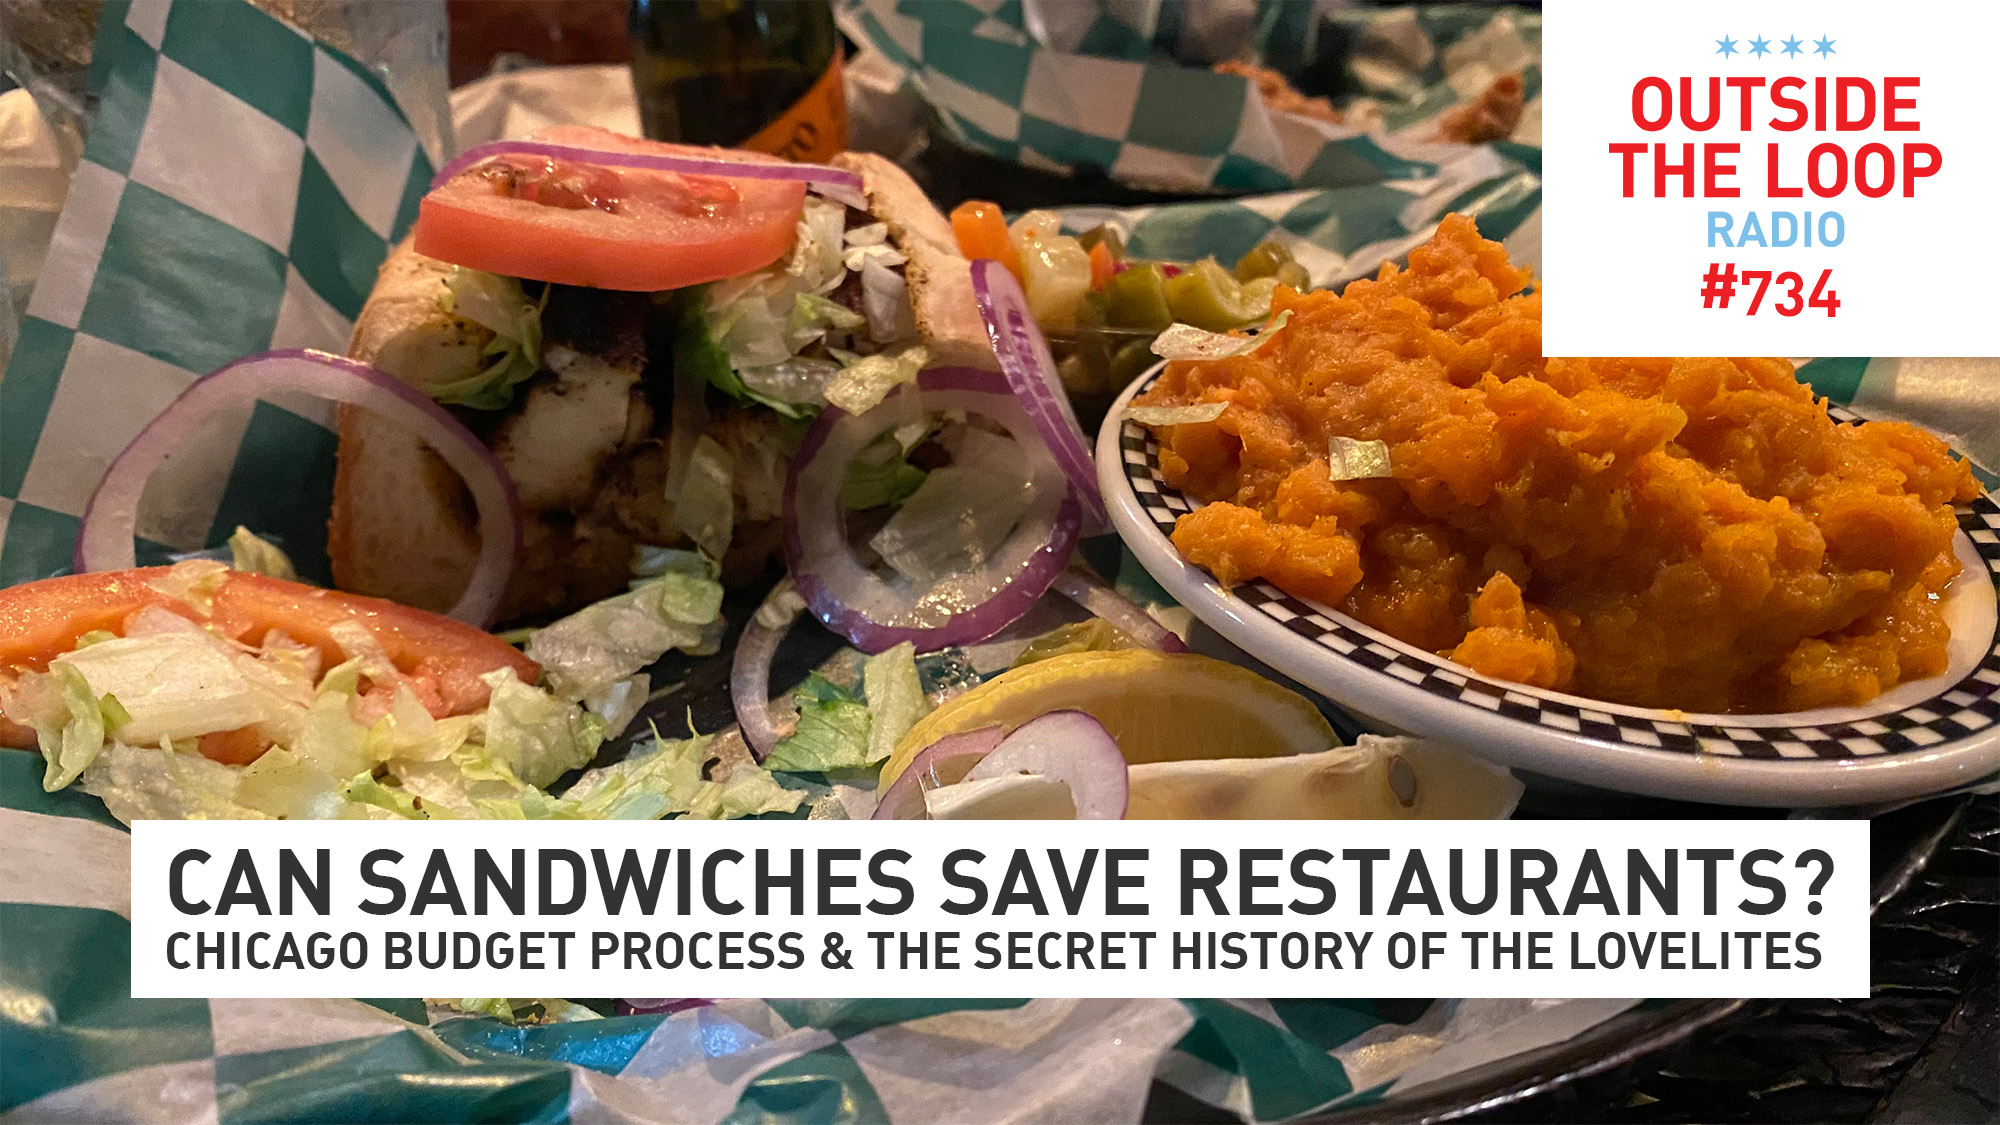 Sandwiches rule.